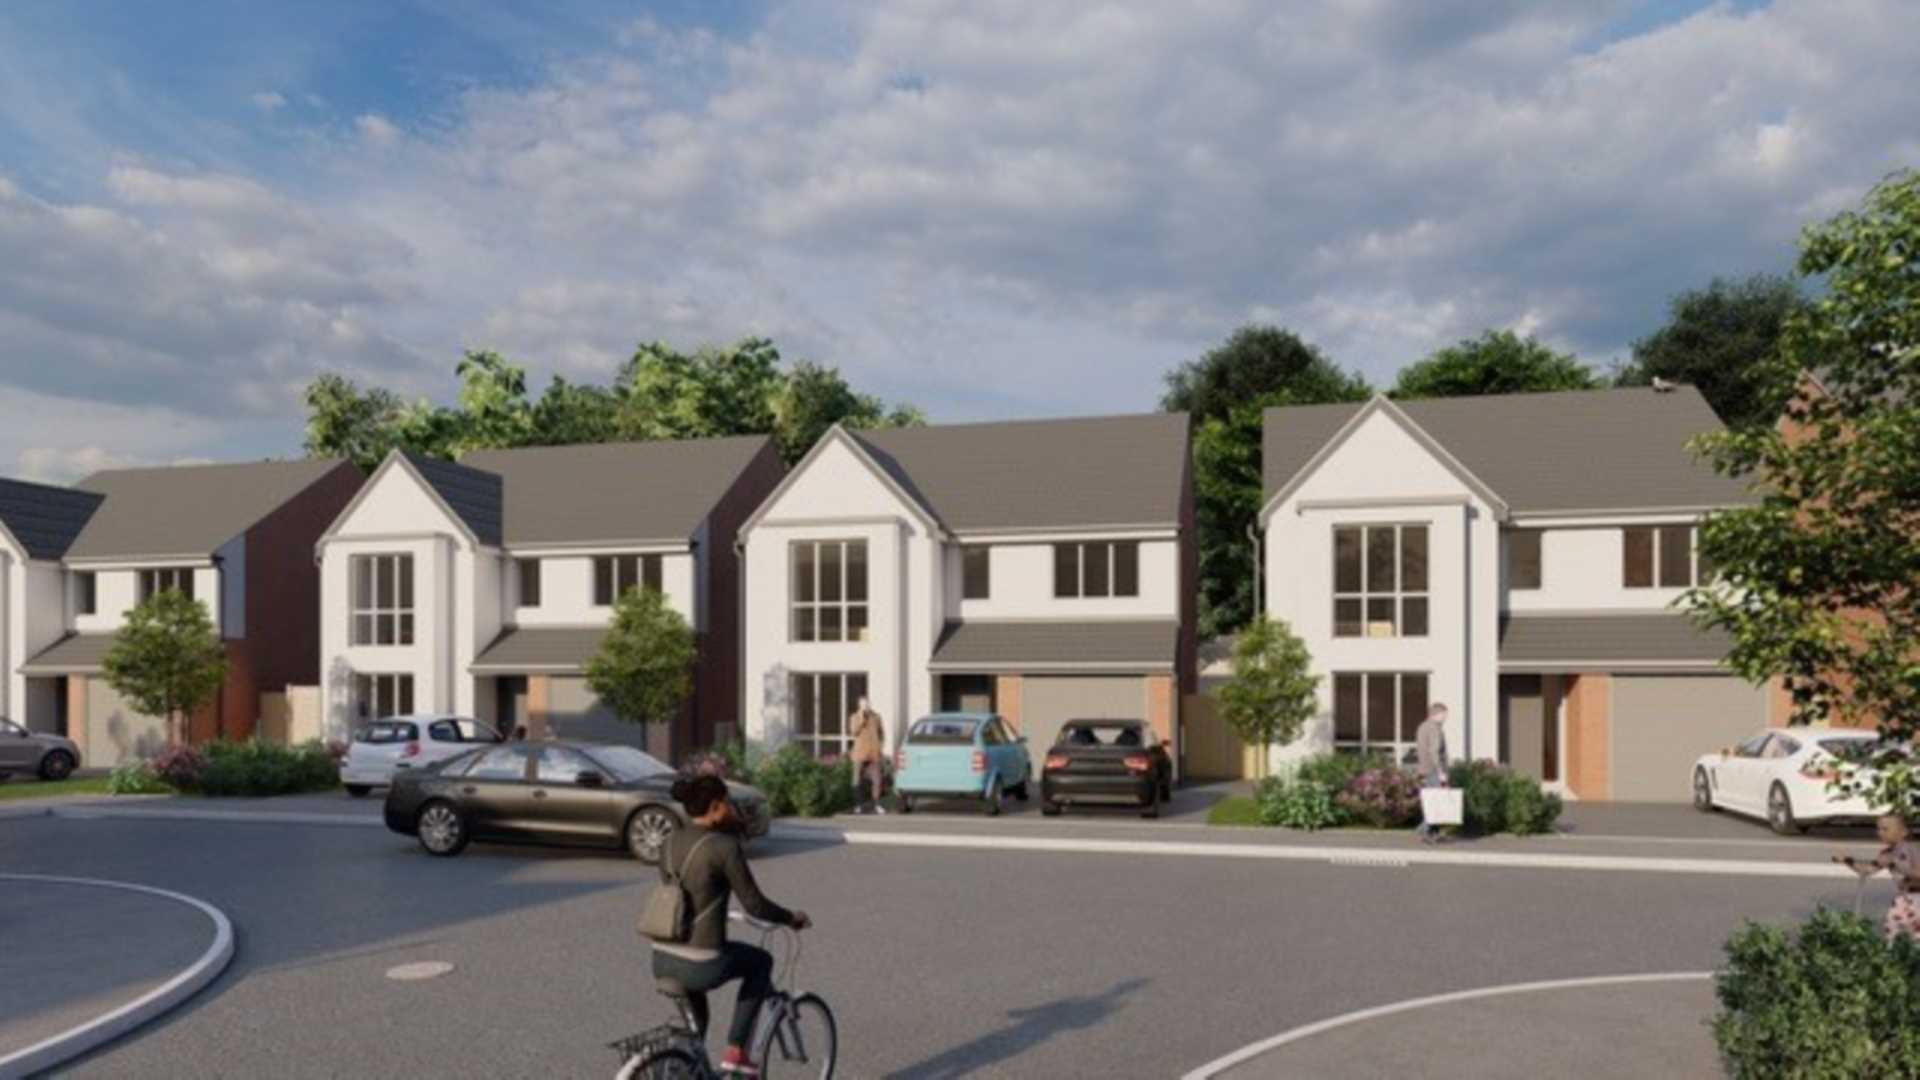 Plot 1 Spencers Lane, Melling, Image 4